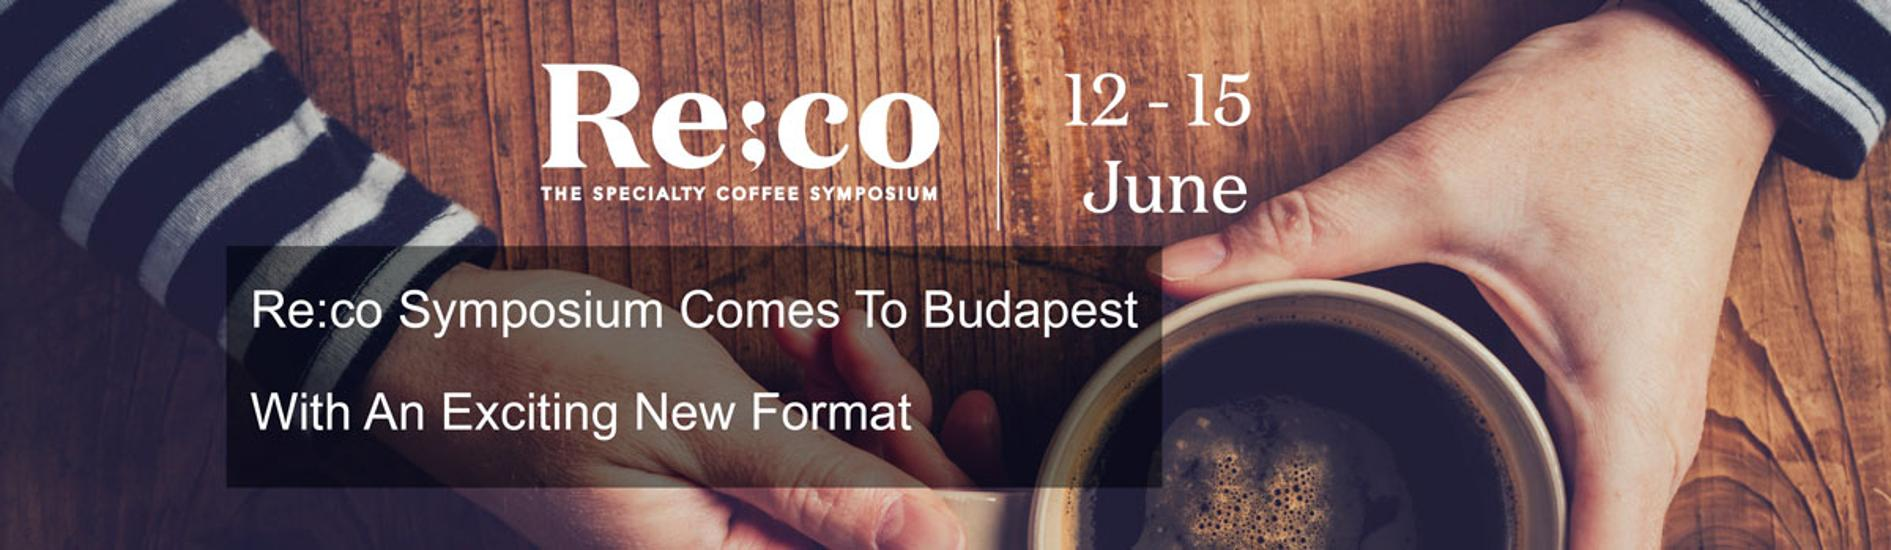 'World of Coffee' Expo In Budapest, 12 - 15 June